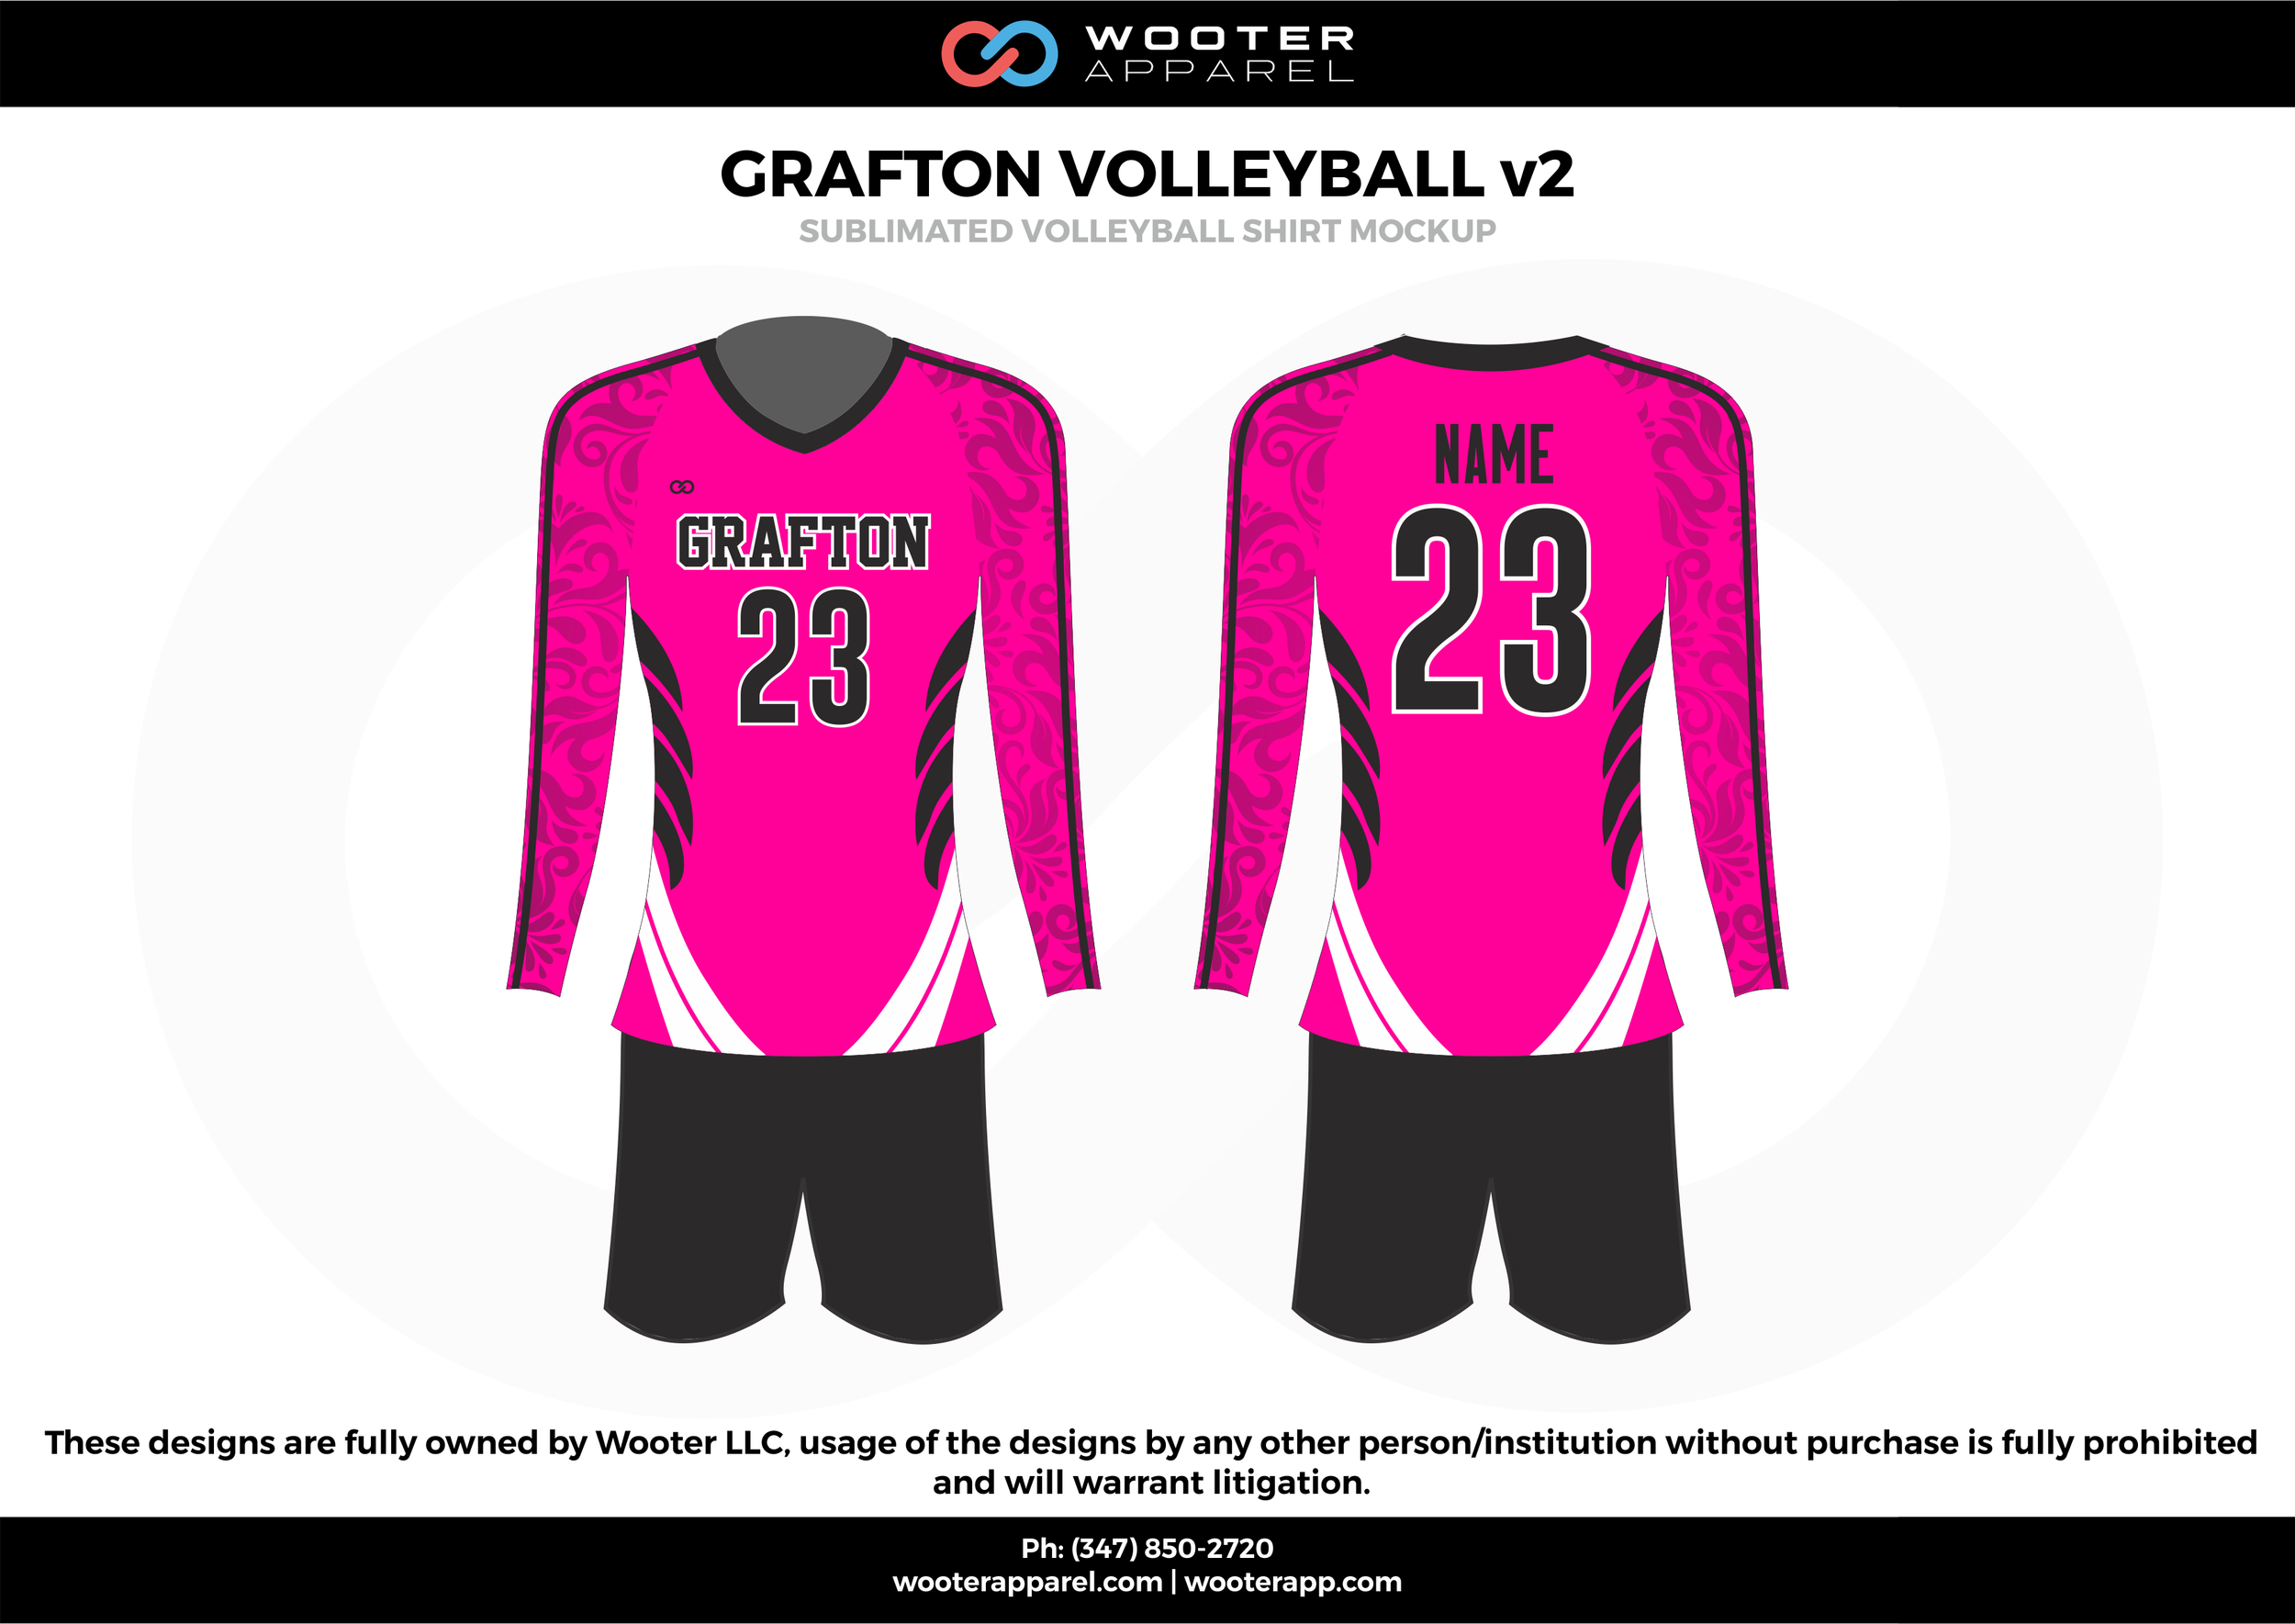 GRAFTON VOLLEYBALL v2  pink white black gray Volleyball Uniforms, Long sleeve Jerseys, Shorts